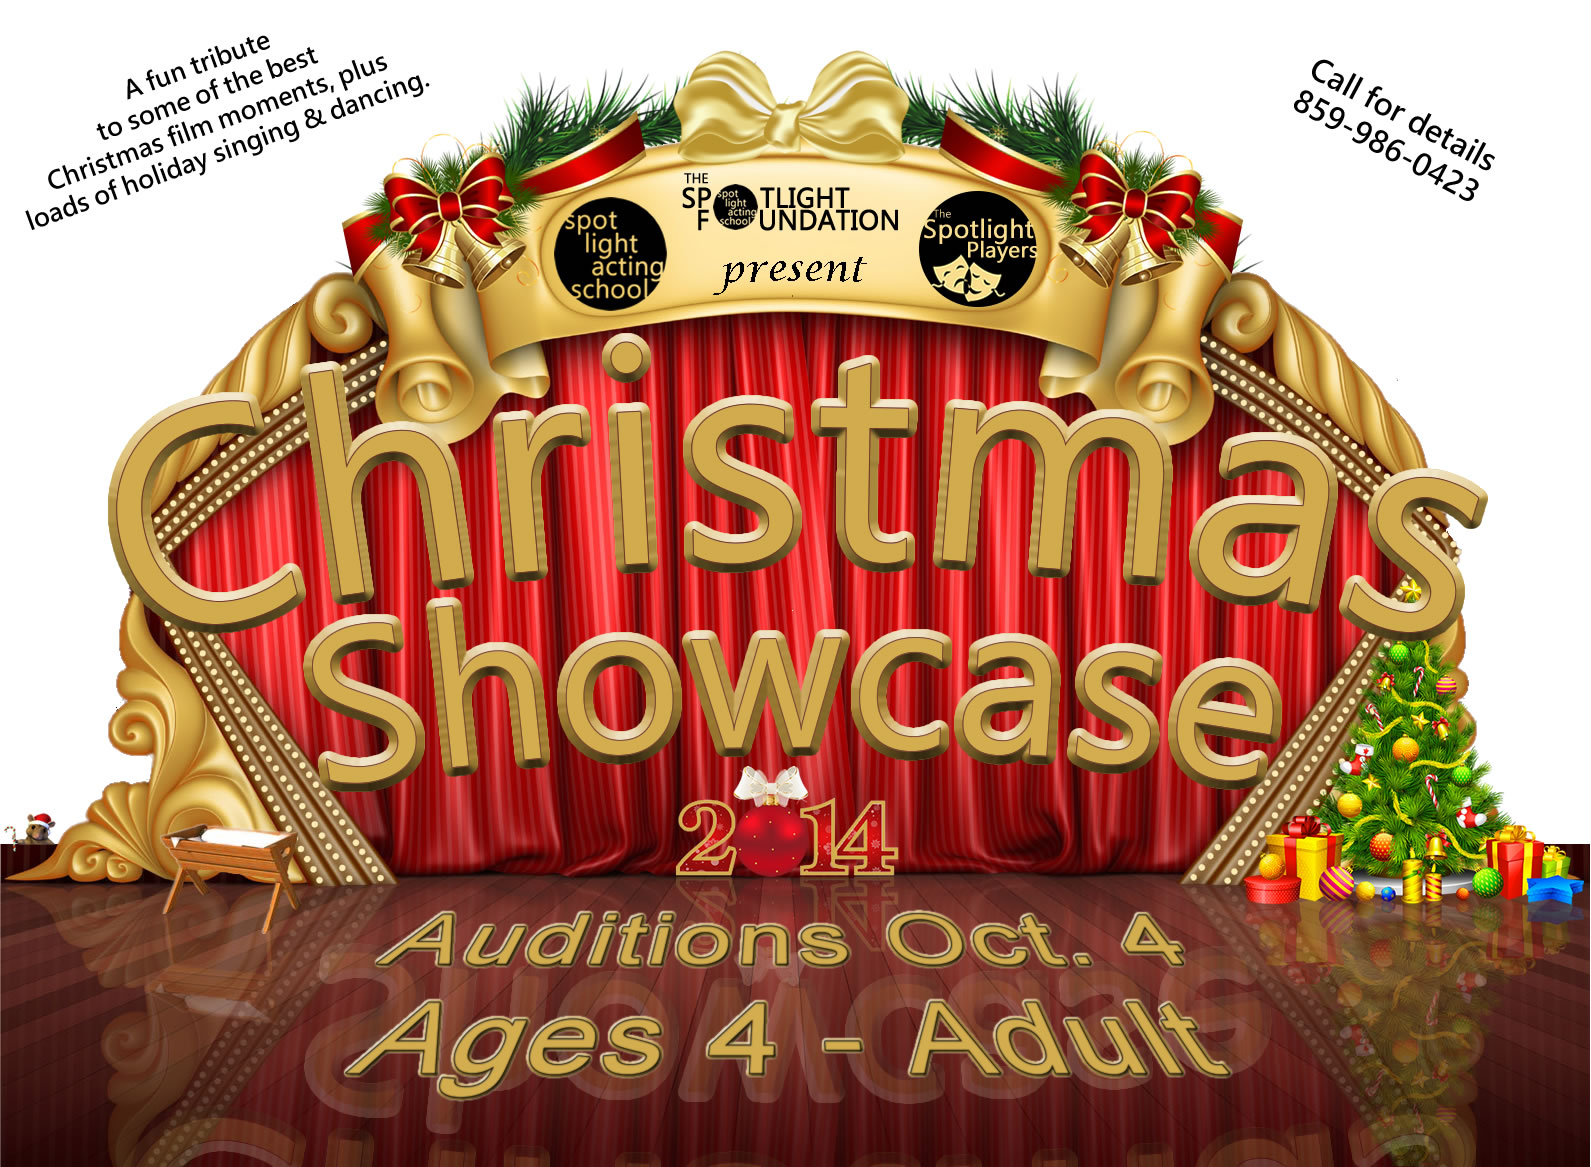 Christmas Showcase 2014 Auditions October 4th